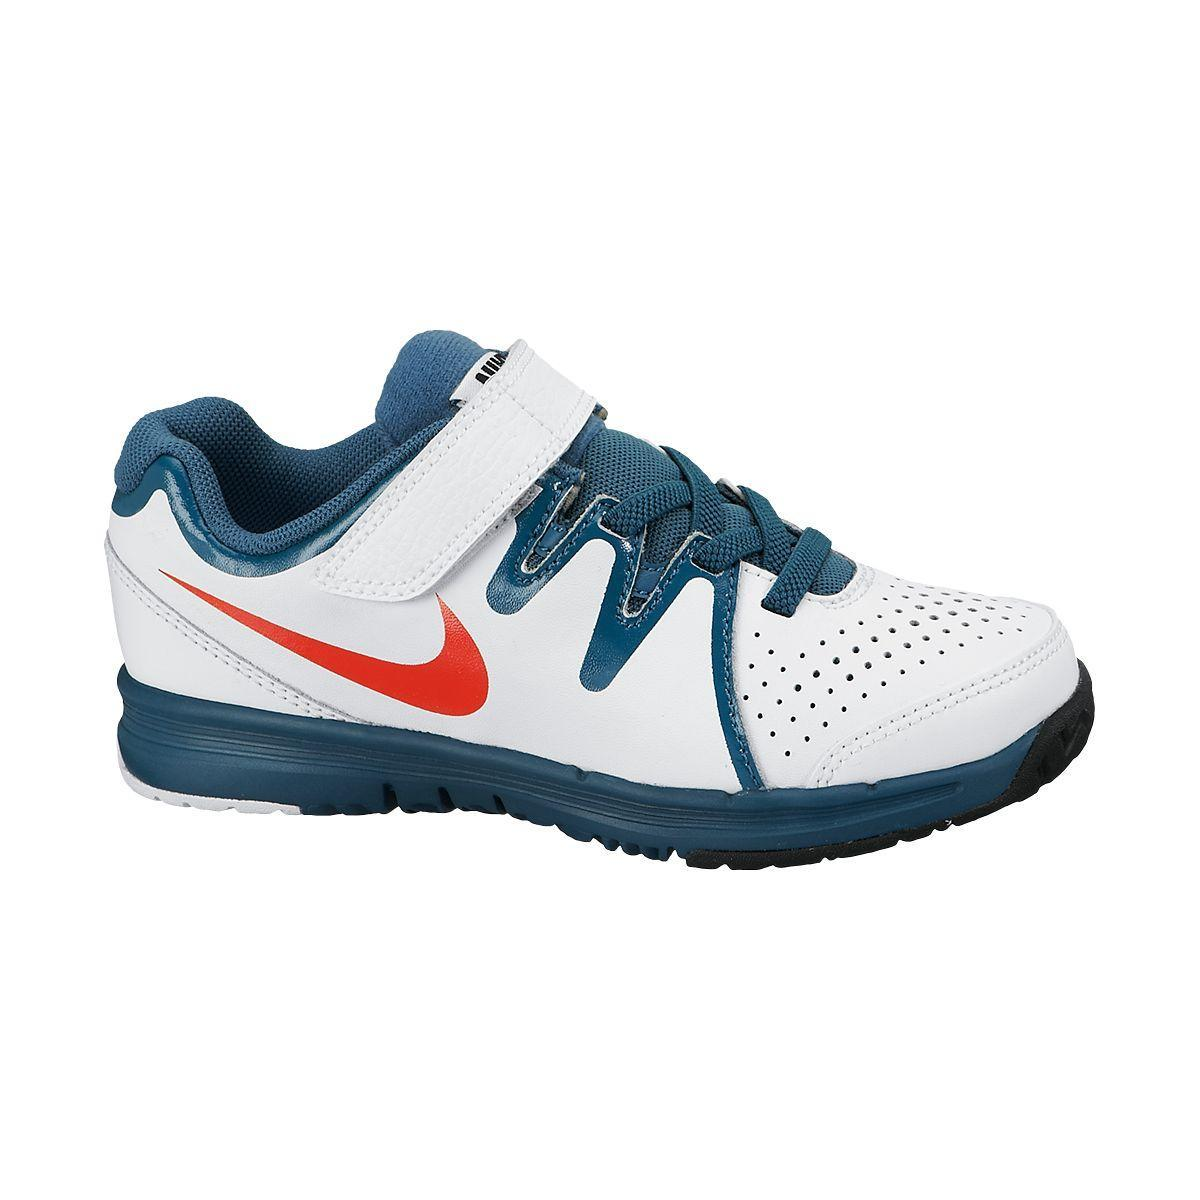 nike boys vapor court tennis shoes white blue